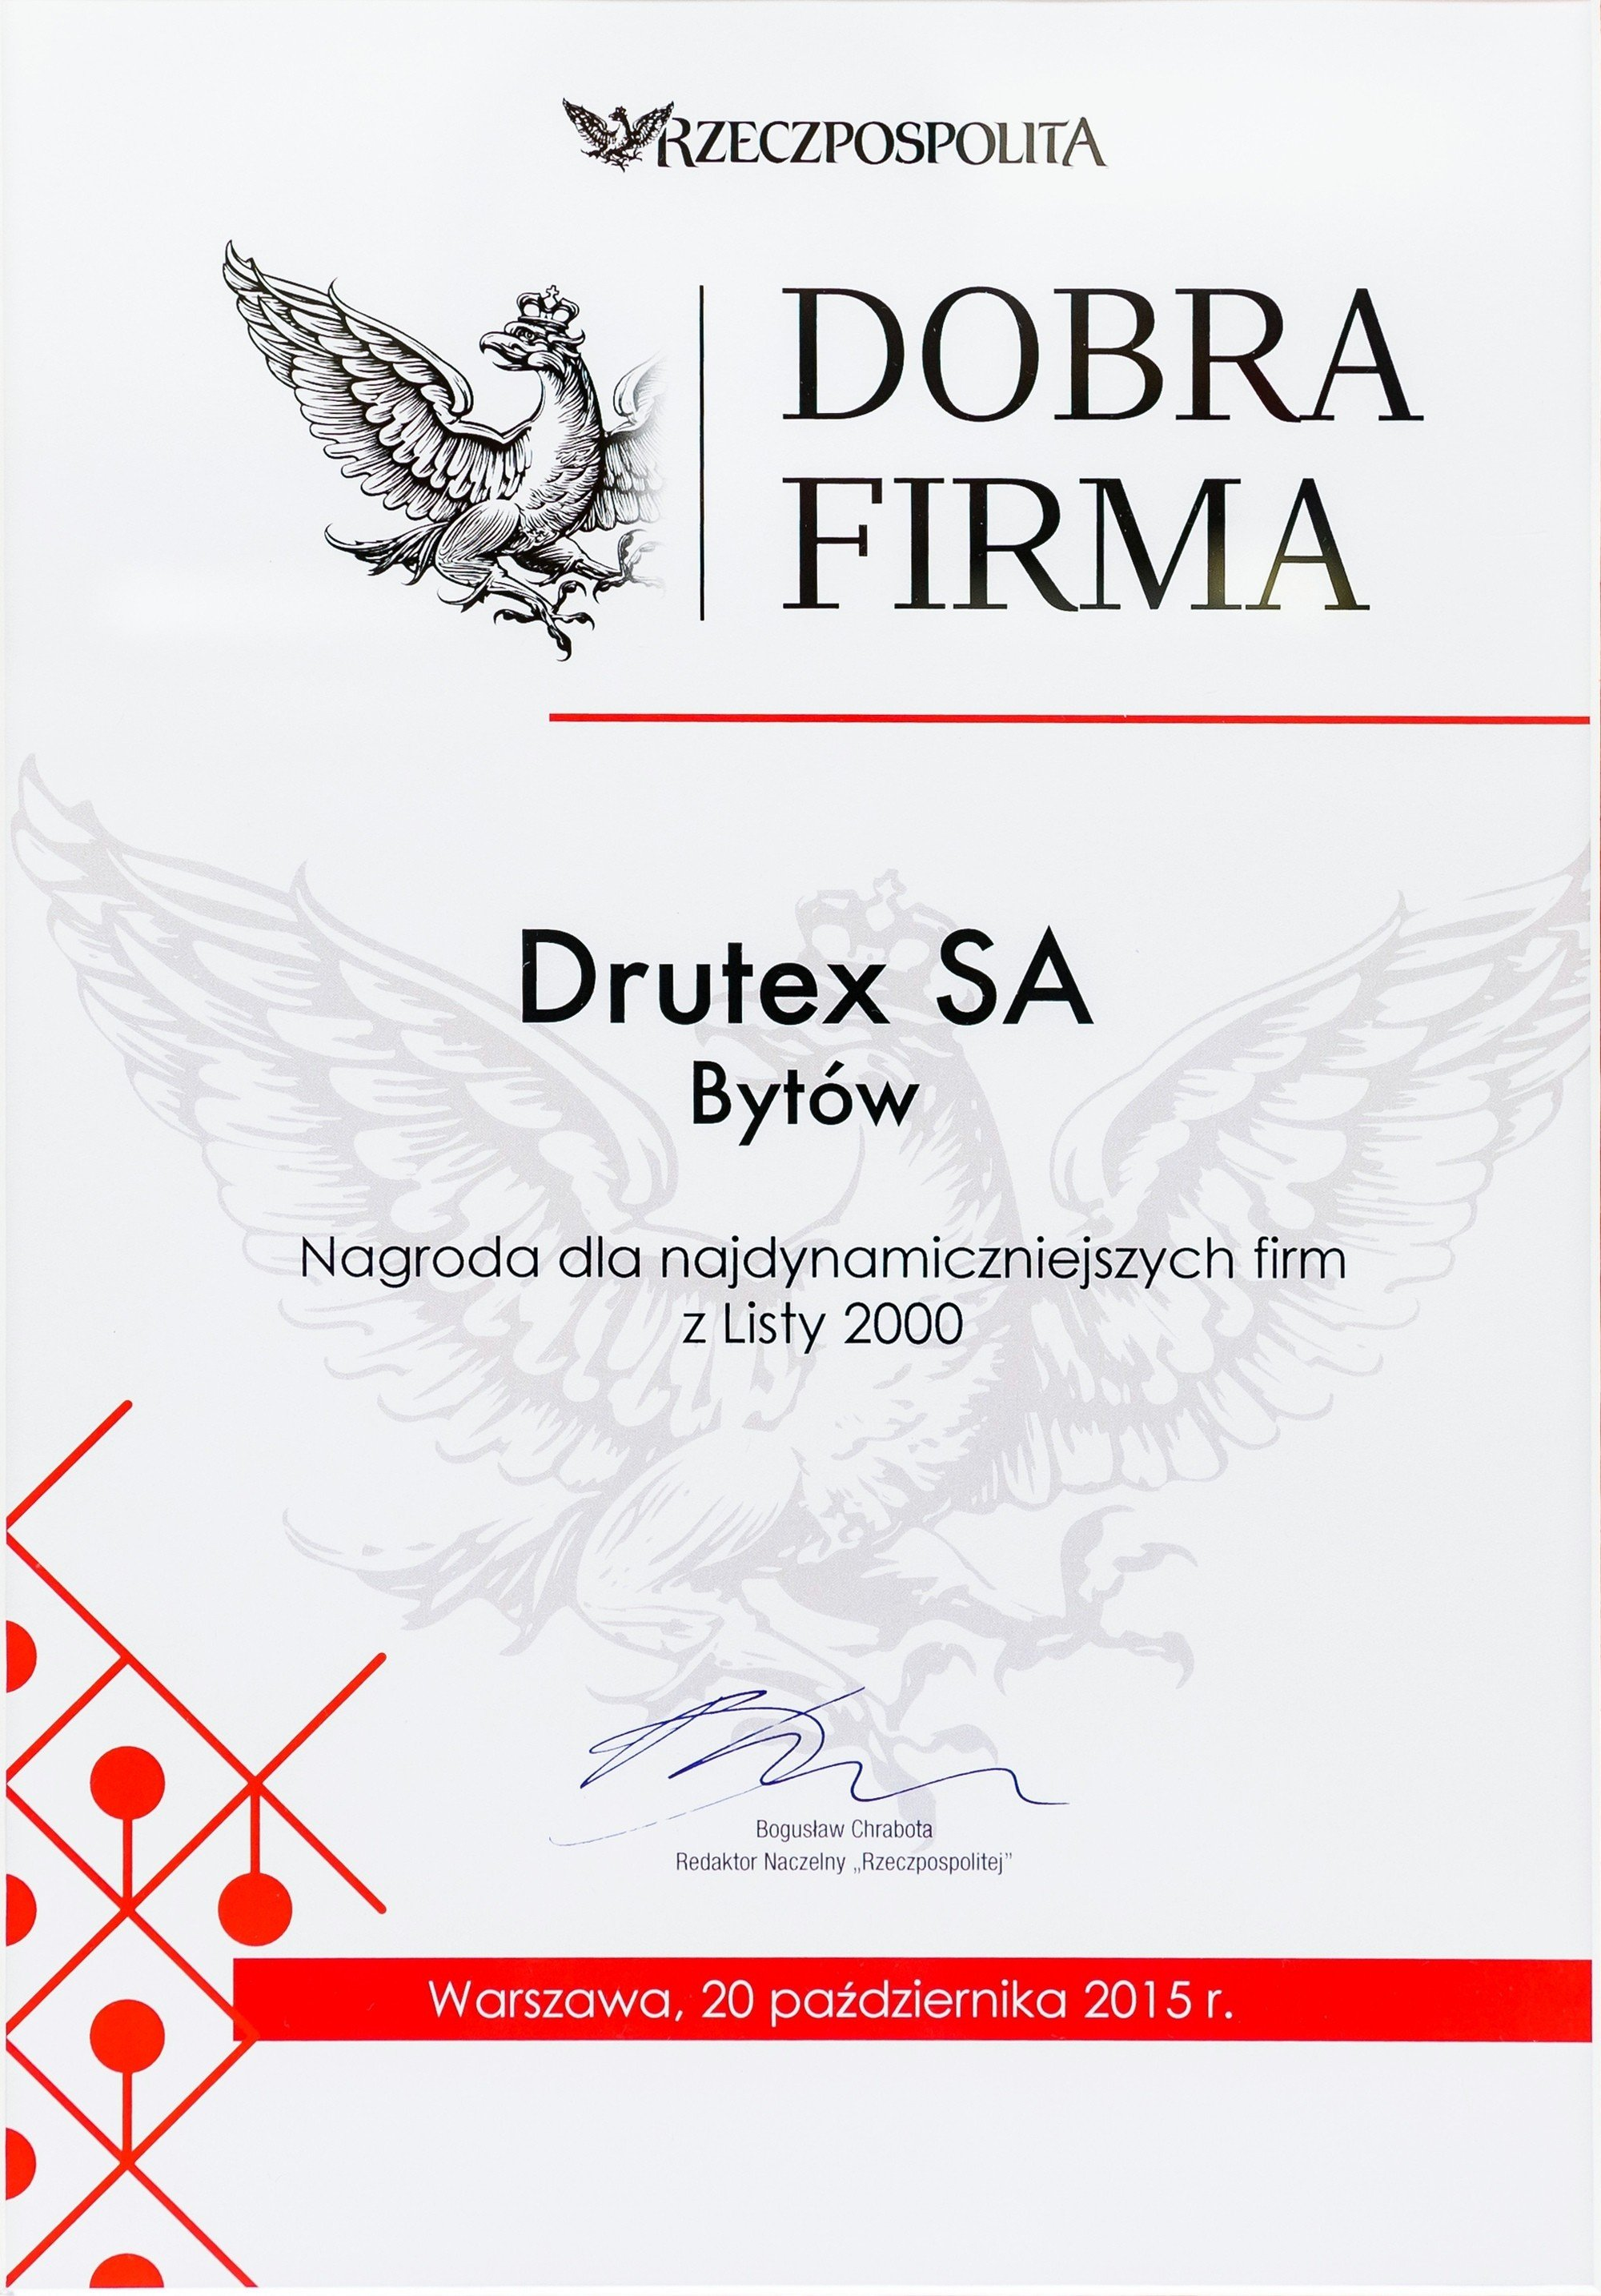 DRUTEX among the 20 best Polish companies.